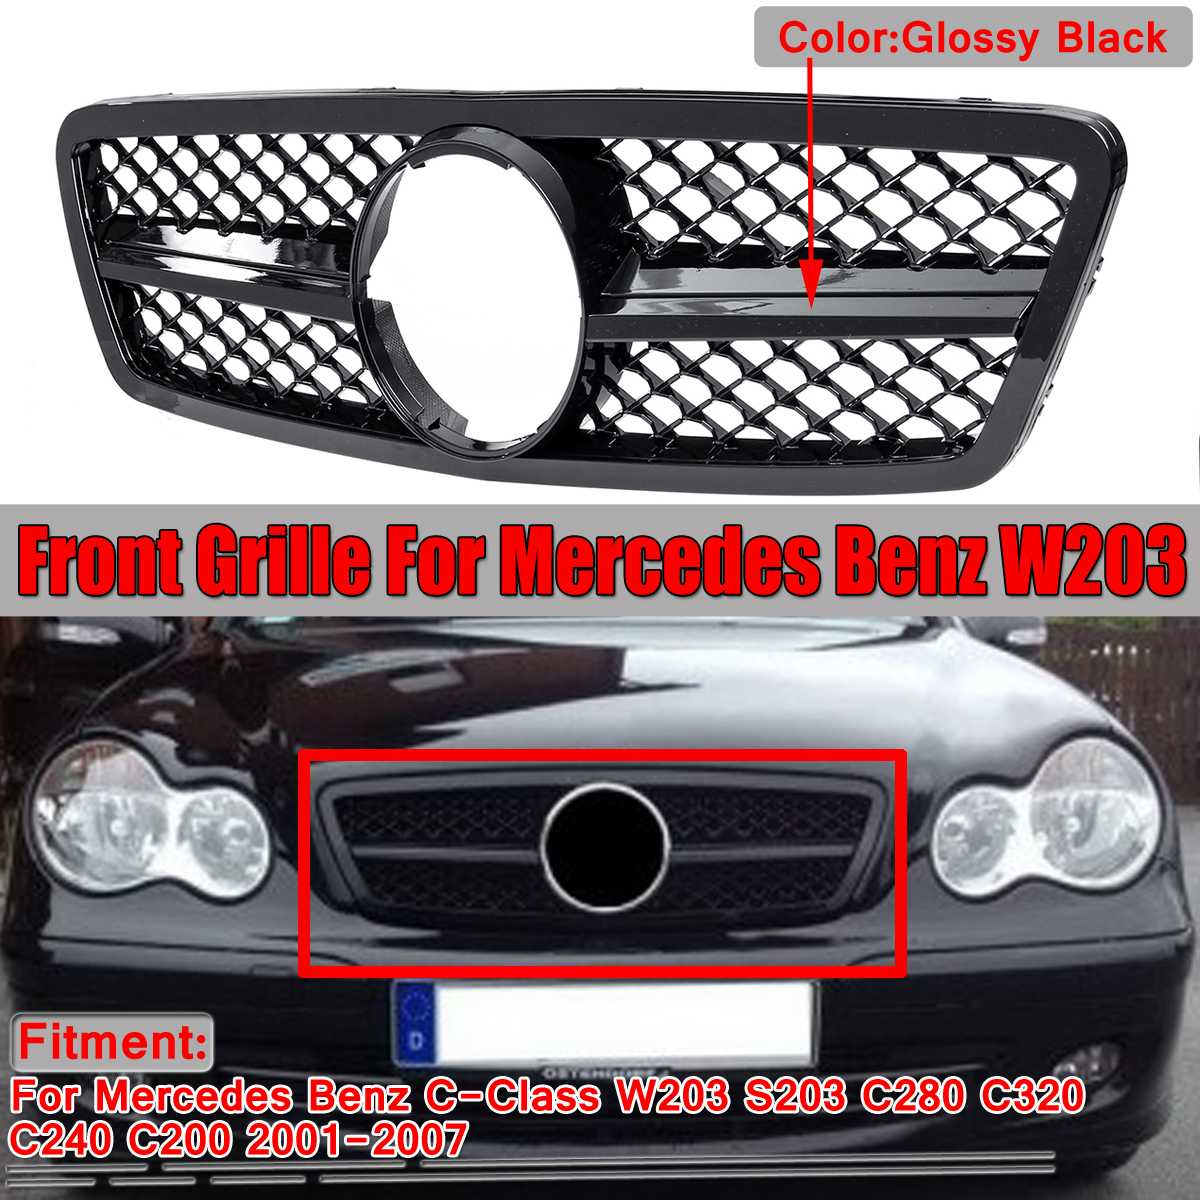 Chrome/Black Car Auto Front Grille Grill For Mercedes For Benz C-Class <font><b>W203</b></font> S203 C280 C320 C240 <font><b>C200</b></font> 2001-2007 For AMG Style image